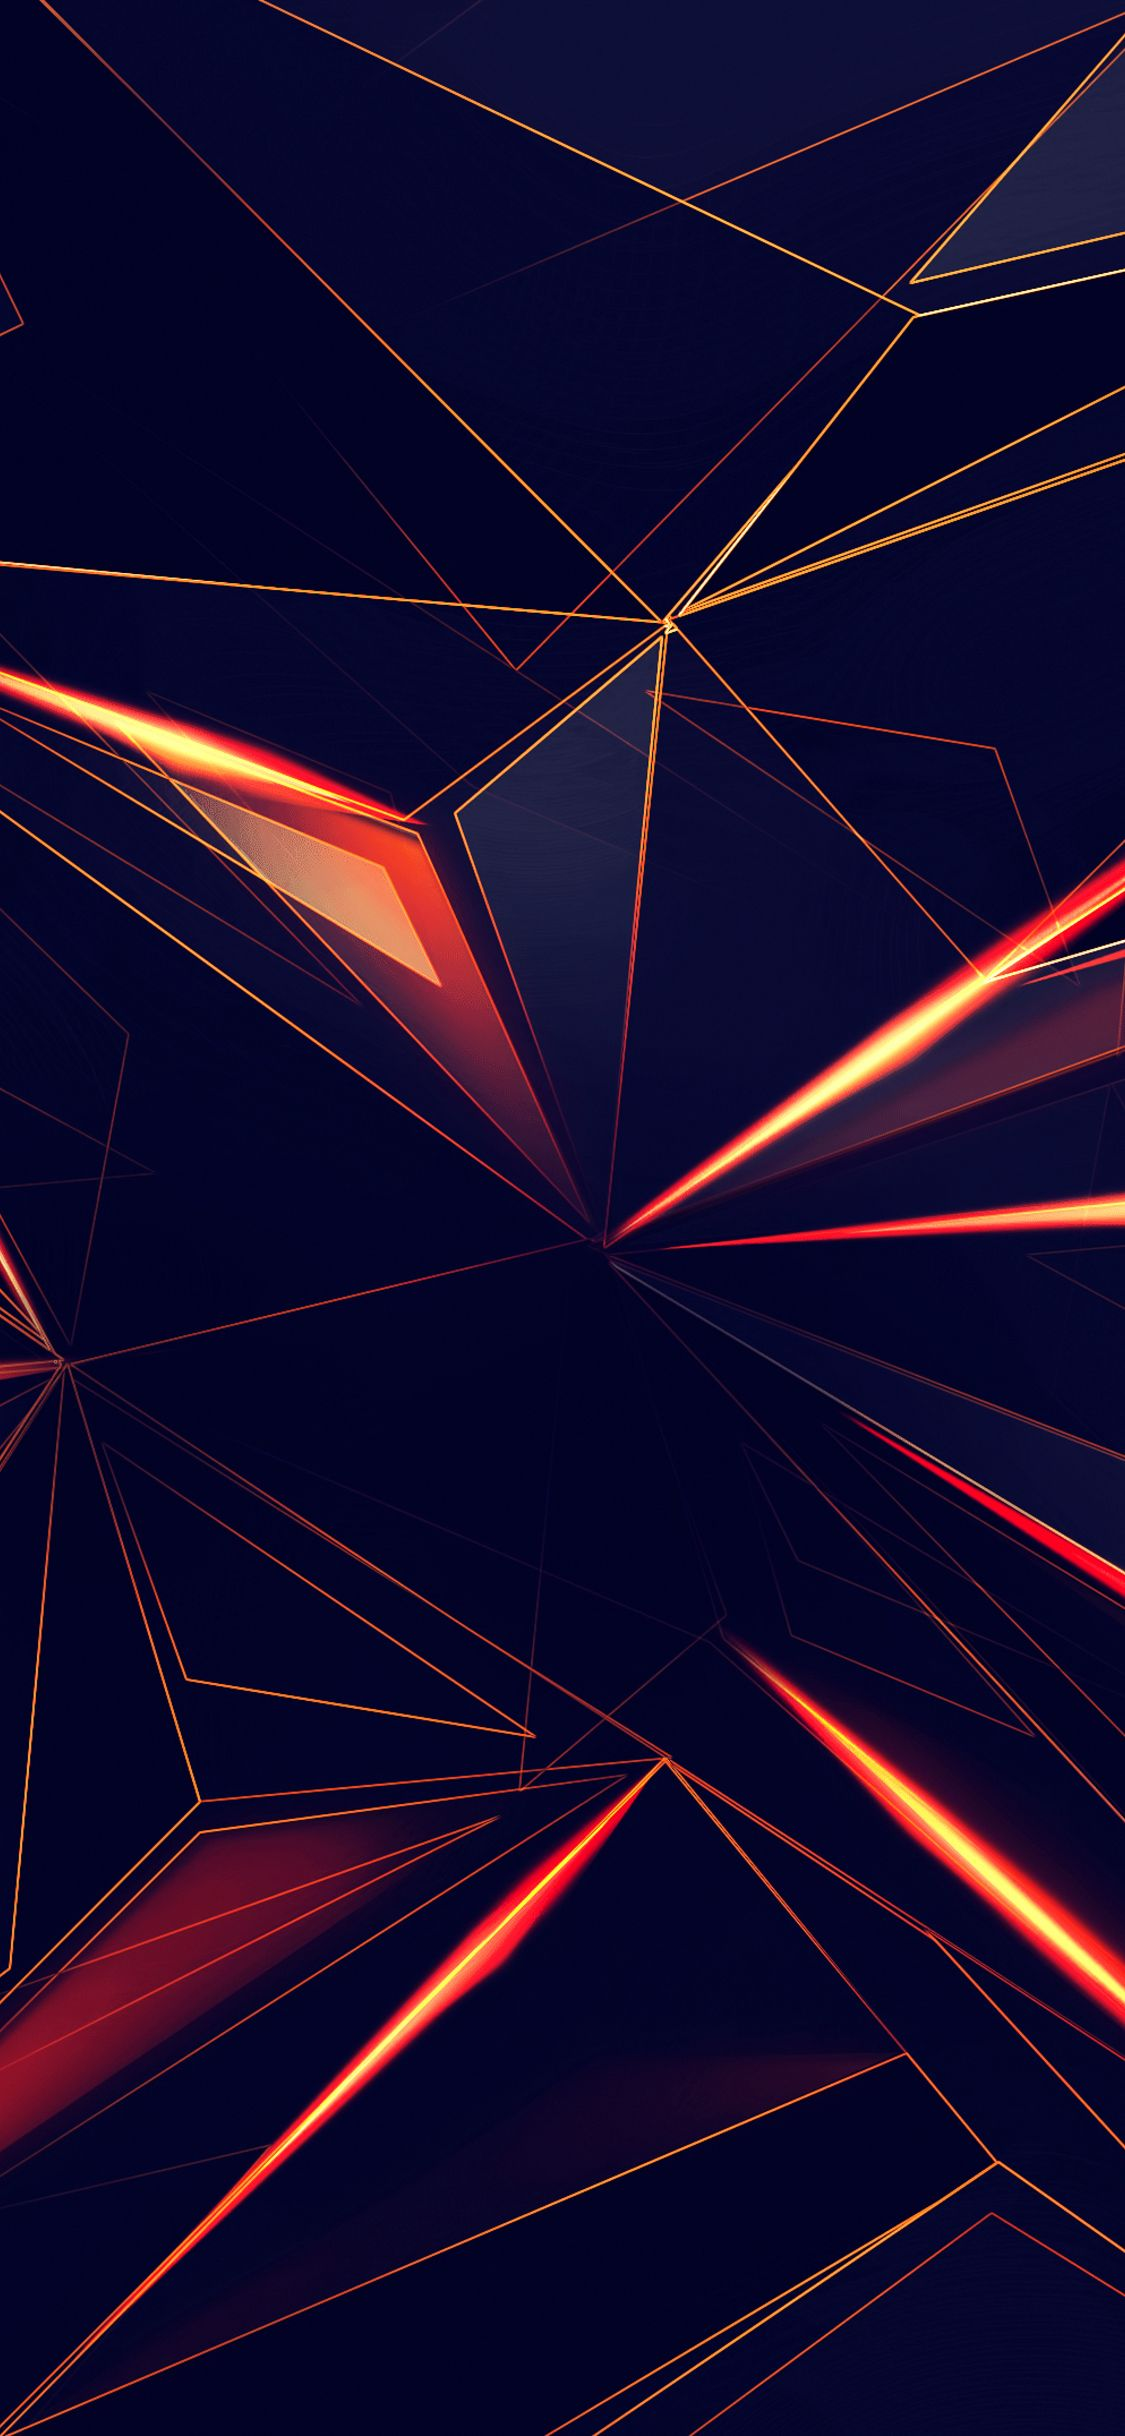 3d Shapes Abstract Lines 4k In 1125x2436 Resolution Abstract